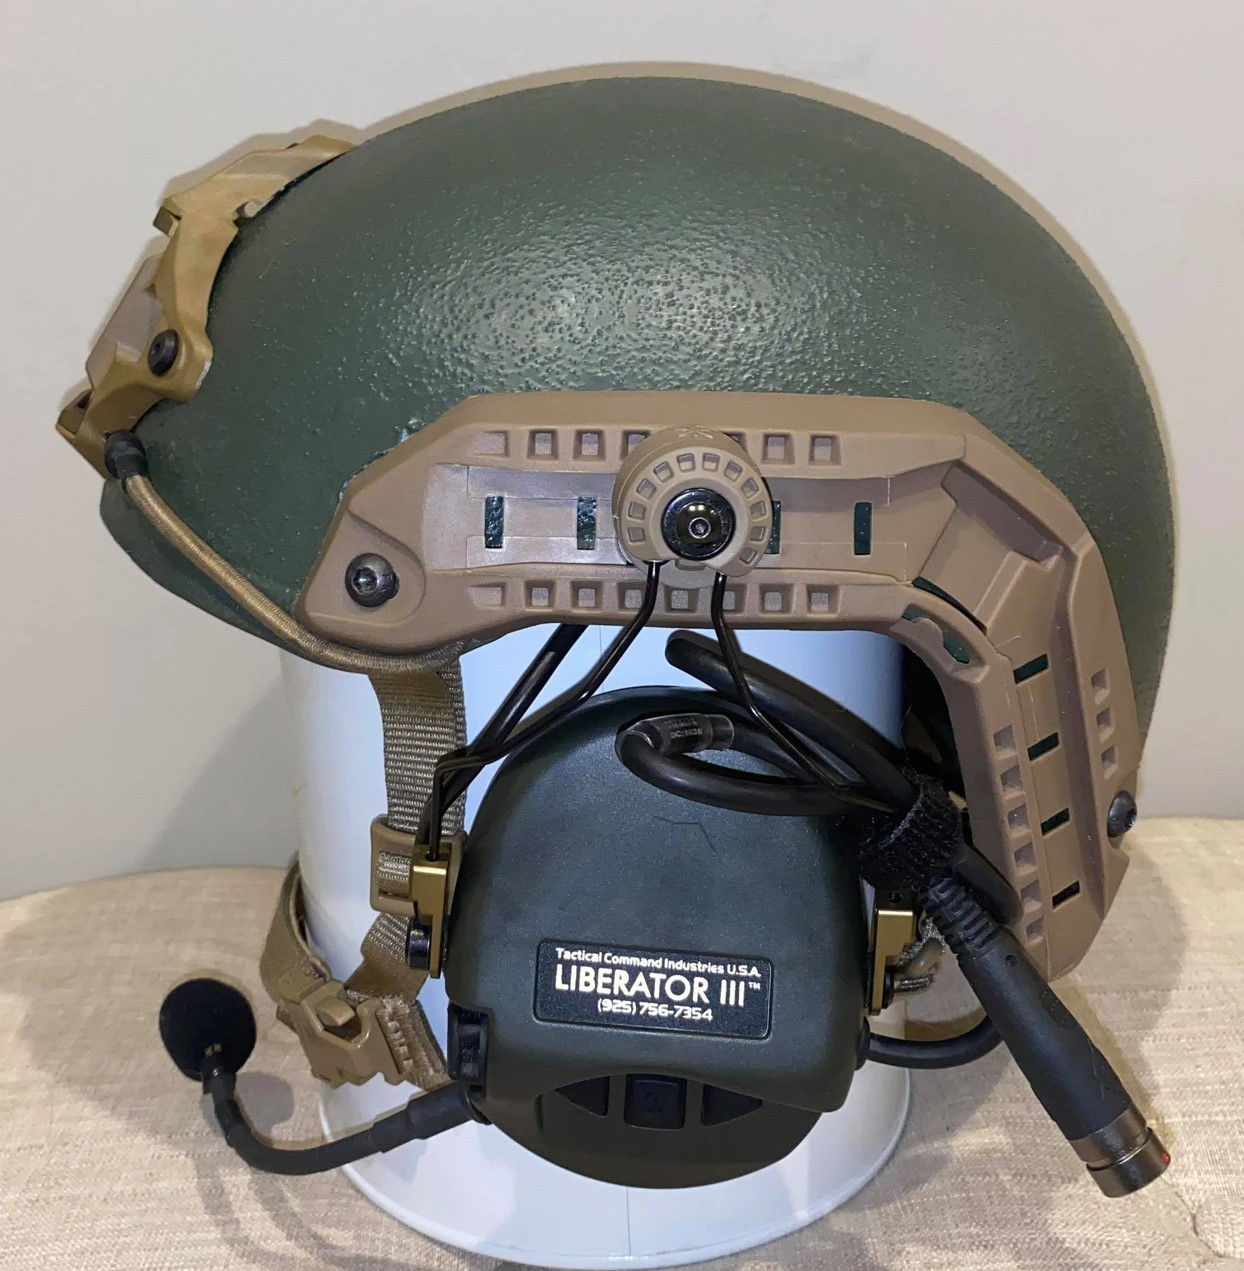 Without an optional custom cover, the CVC shell base indicates the helmet's military surplus origins.